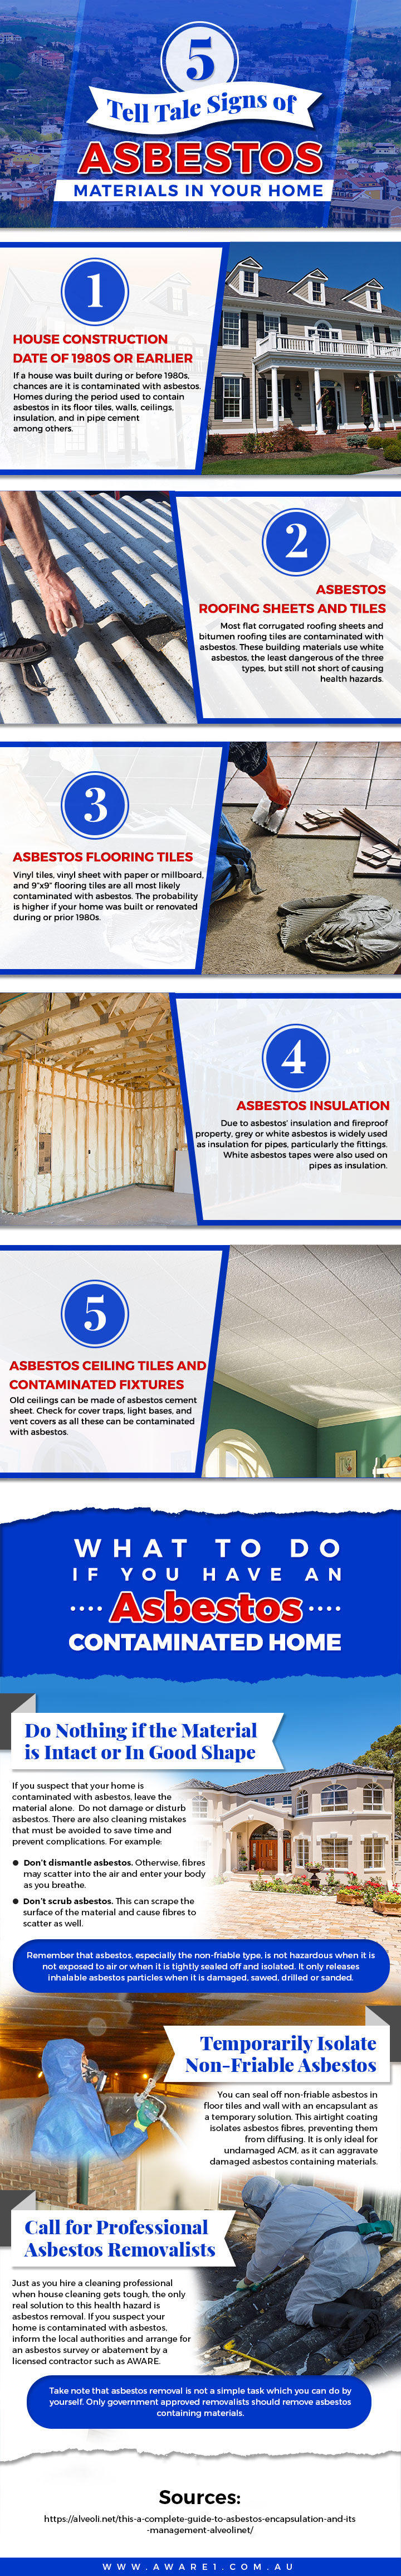 Signs of Asbestos Materials in Home